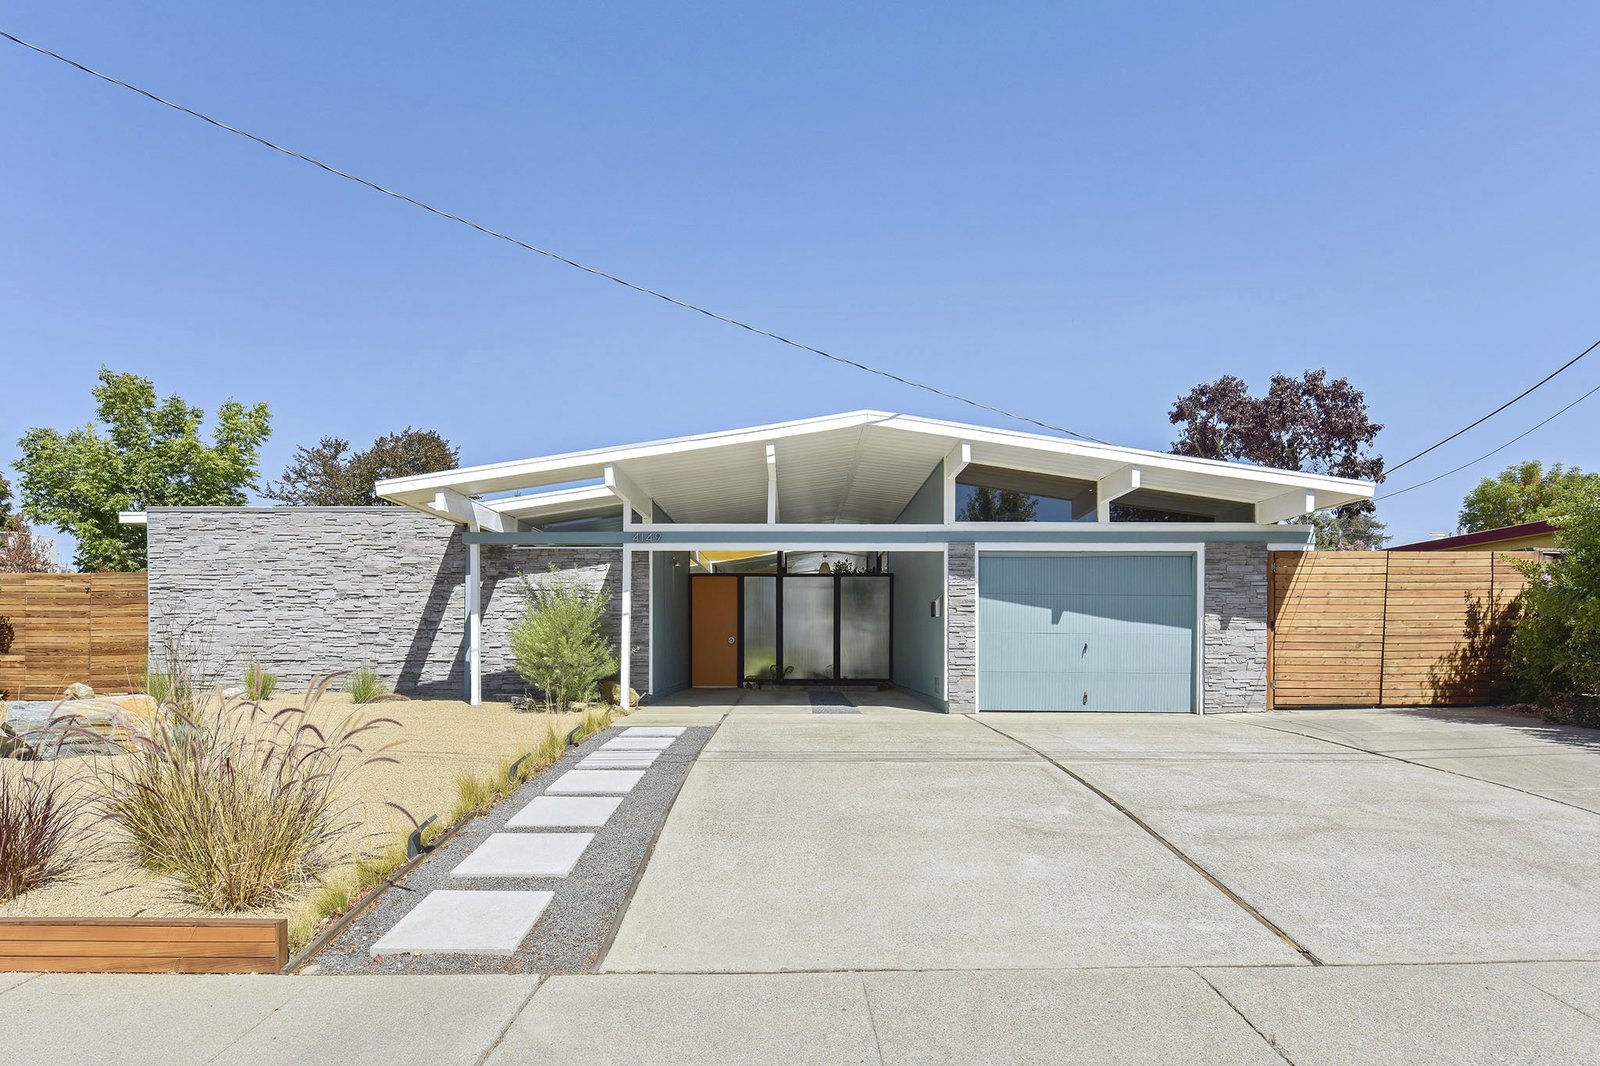 Exterior, Glass, Shingles, House, Brick, Wood, Gable, Mid-Century, and Stone Beautifully renovated, the home has excellent curb appeal with low maintenance landscaping.    Best Exterior Shingles Glass Brick Mid-Century Photos from This Stunning Bay Area Eichler Just Listed For $775K